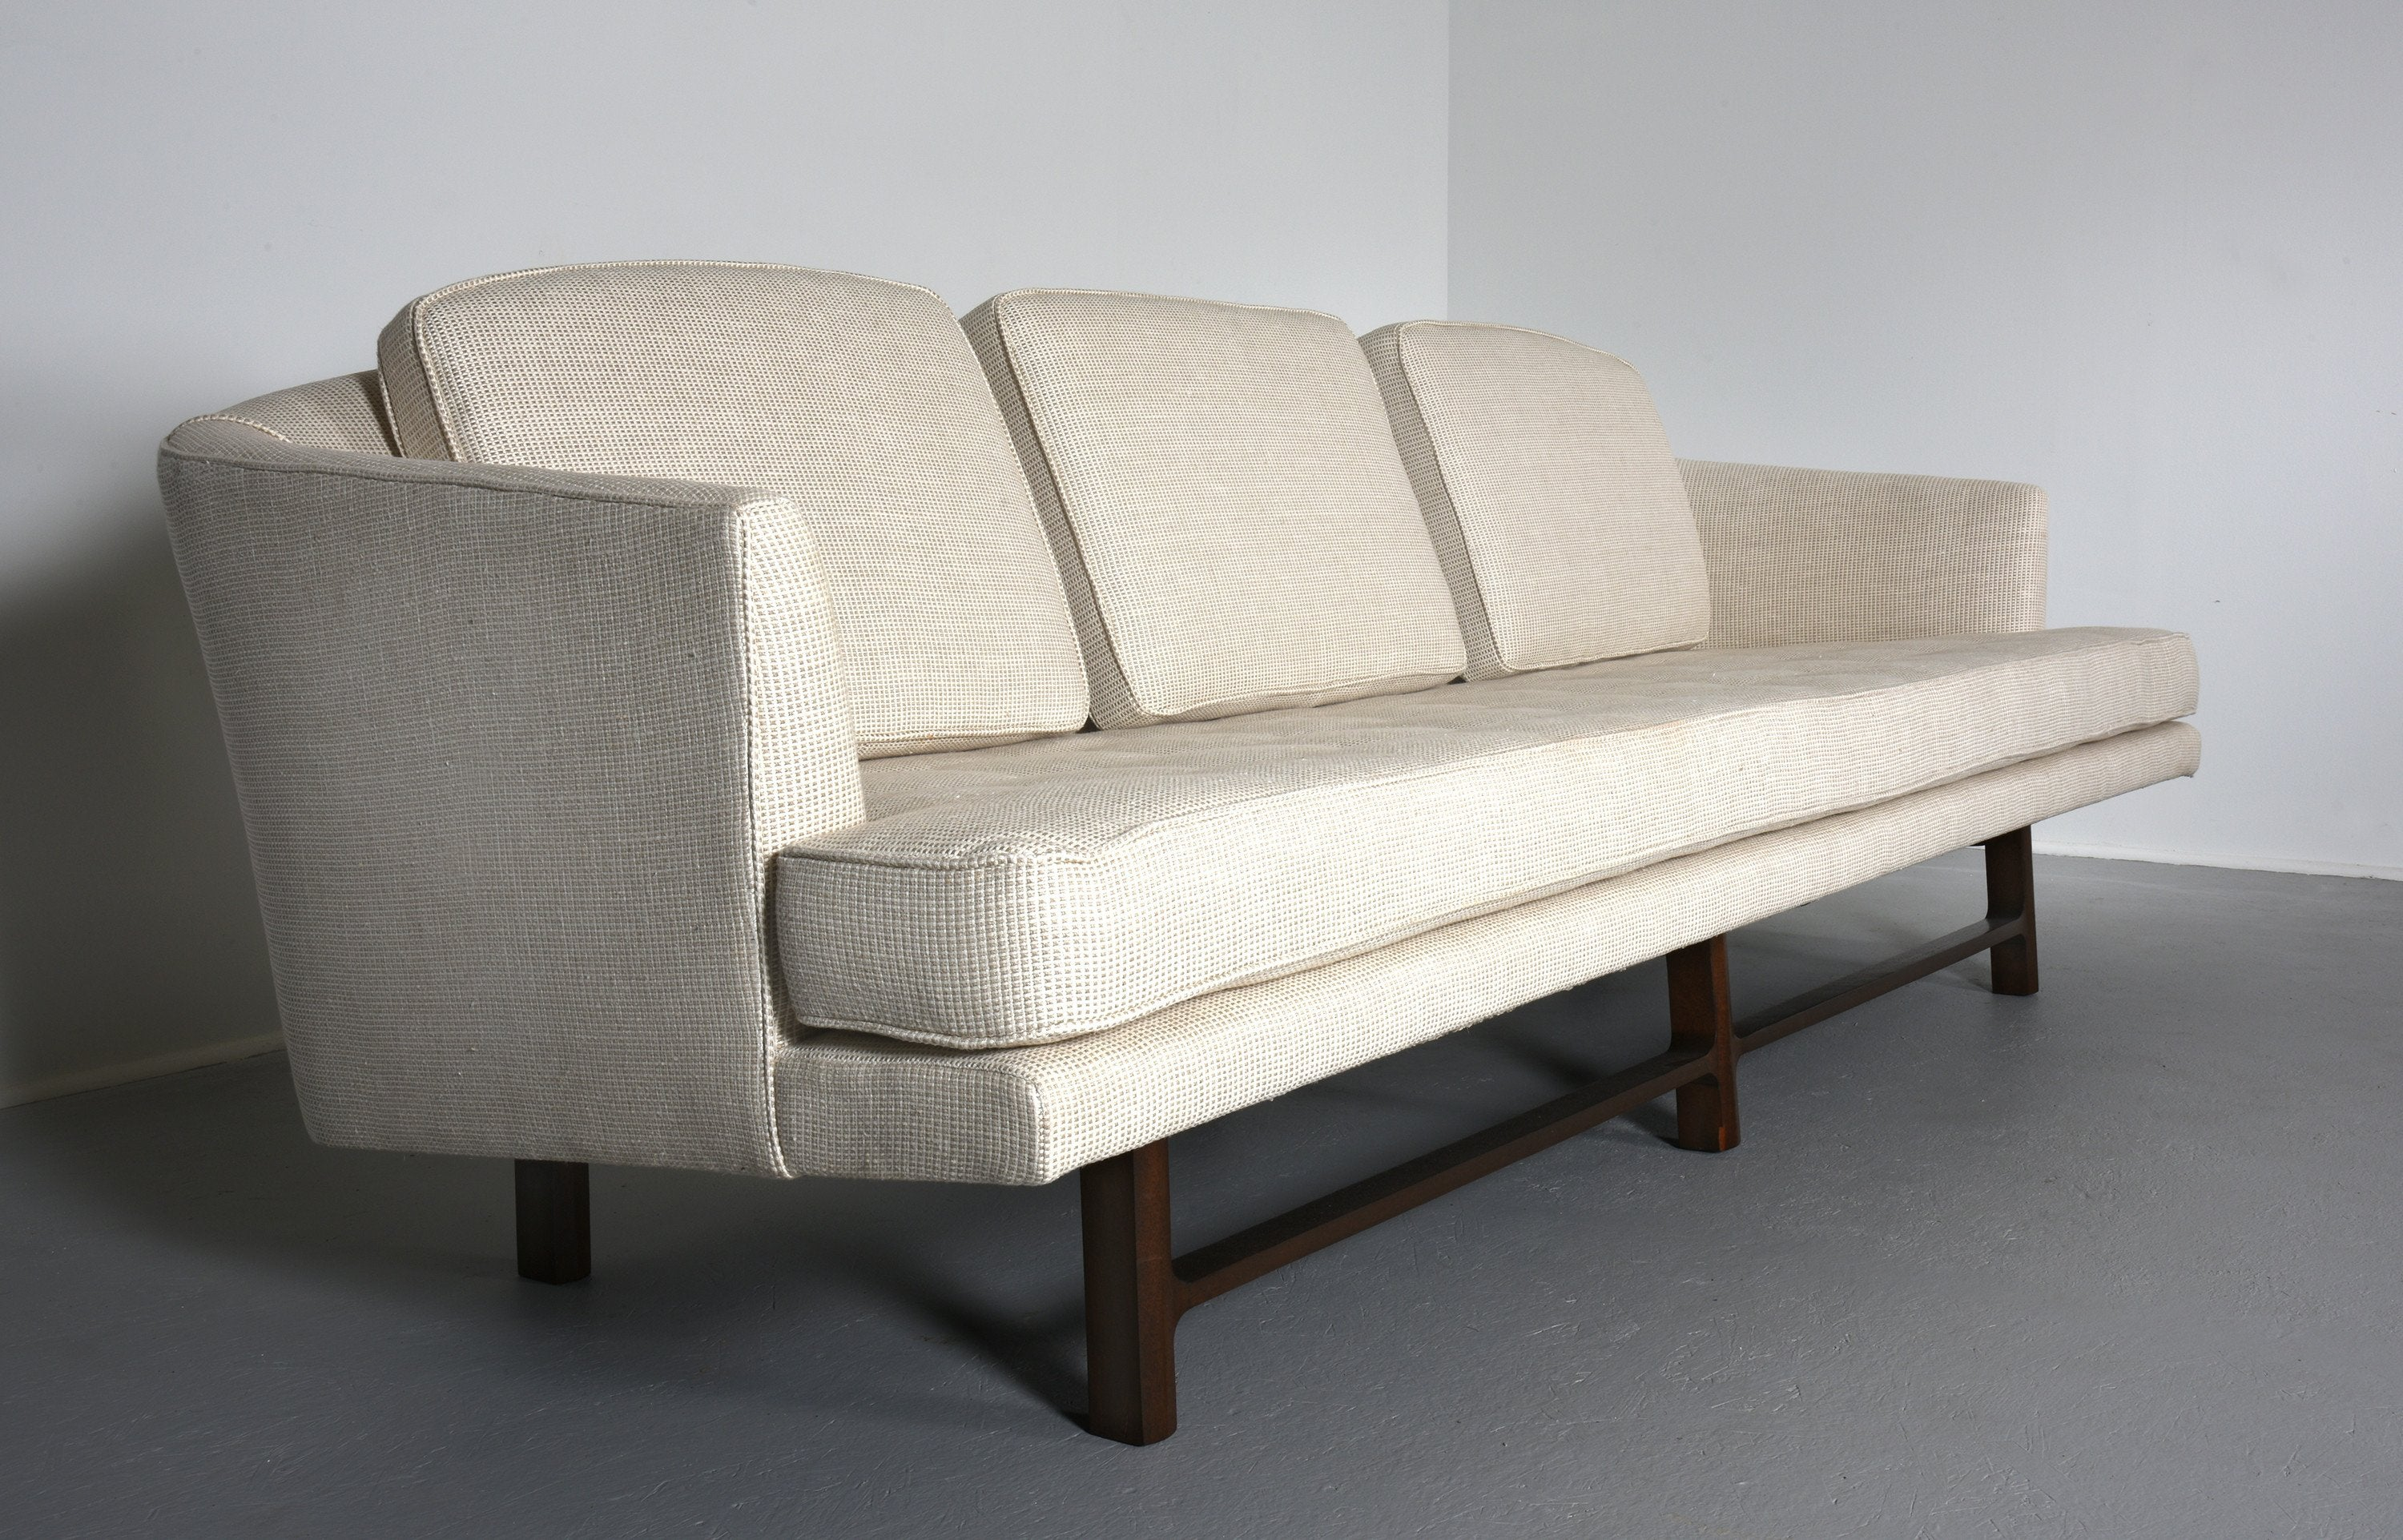 Edward Wormley for Dunbar Sofa Model 5604 circa 1950s